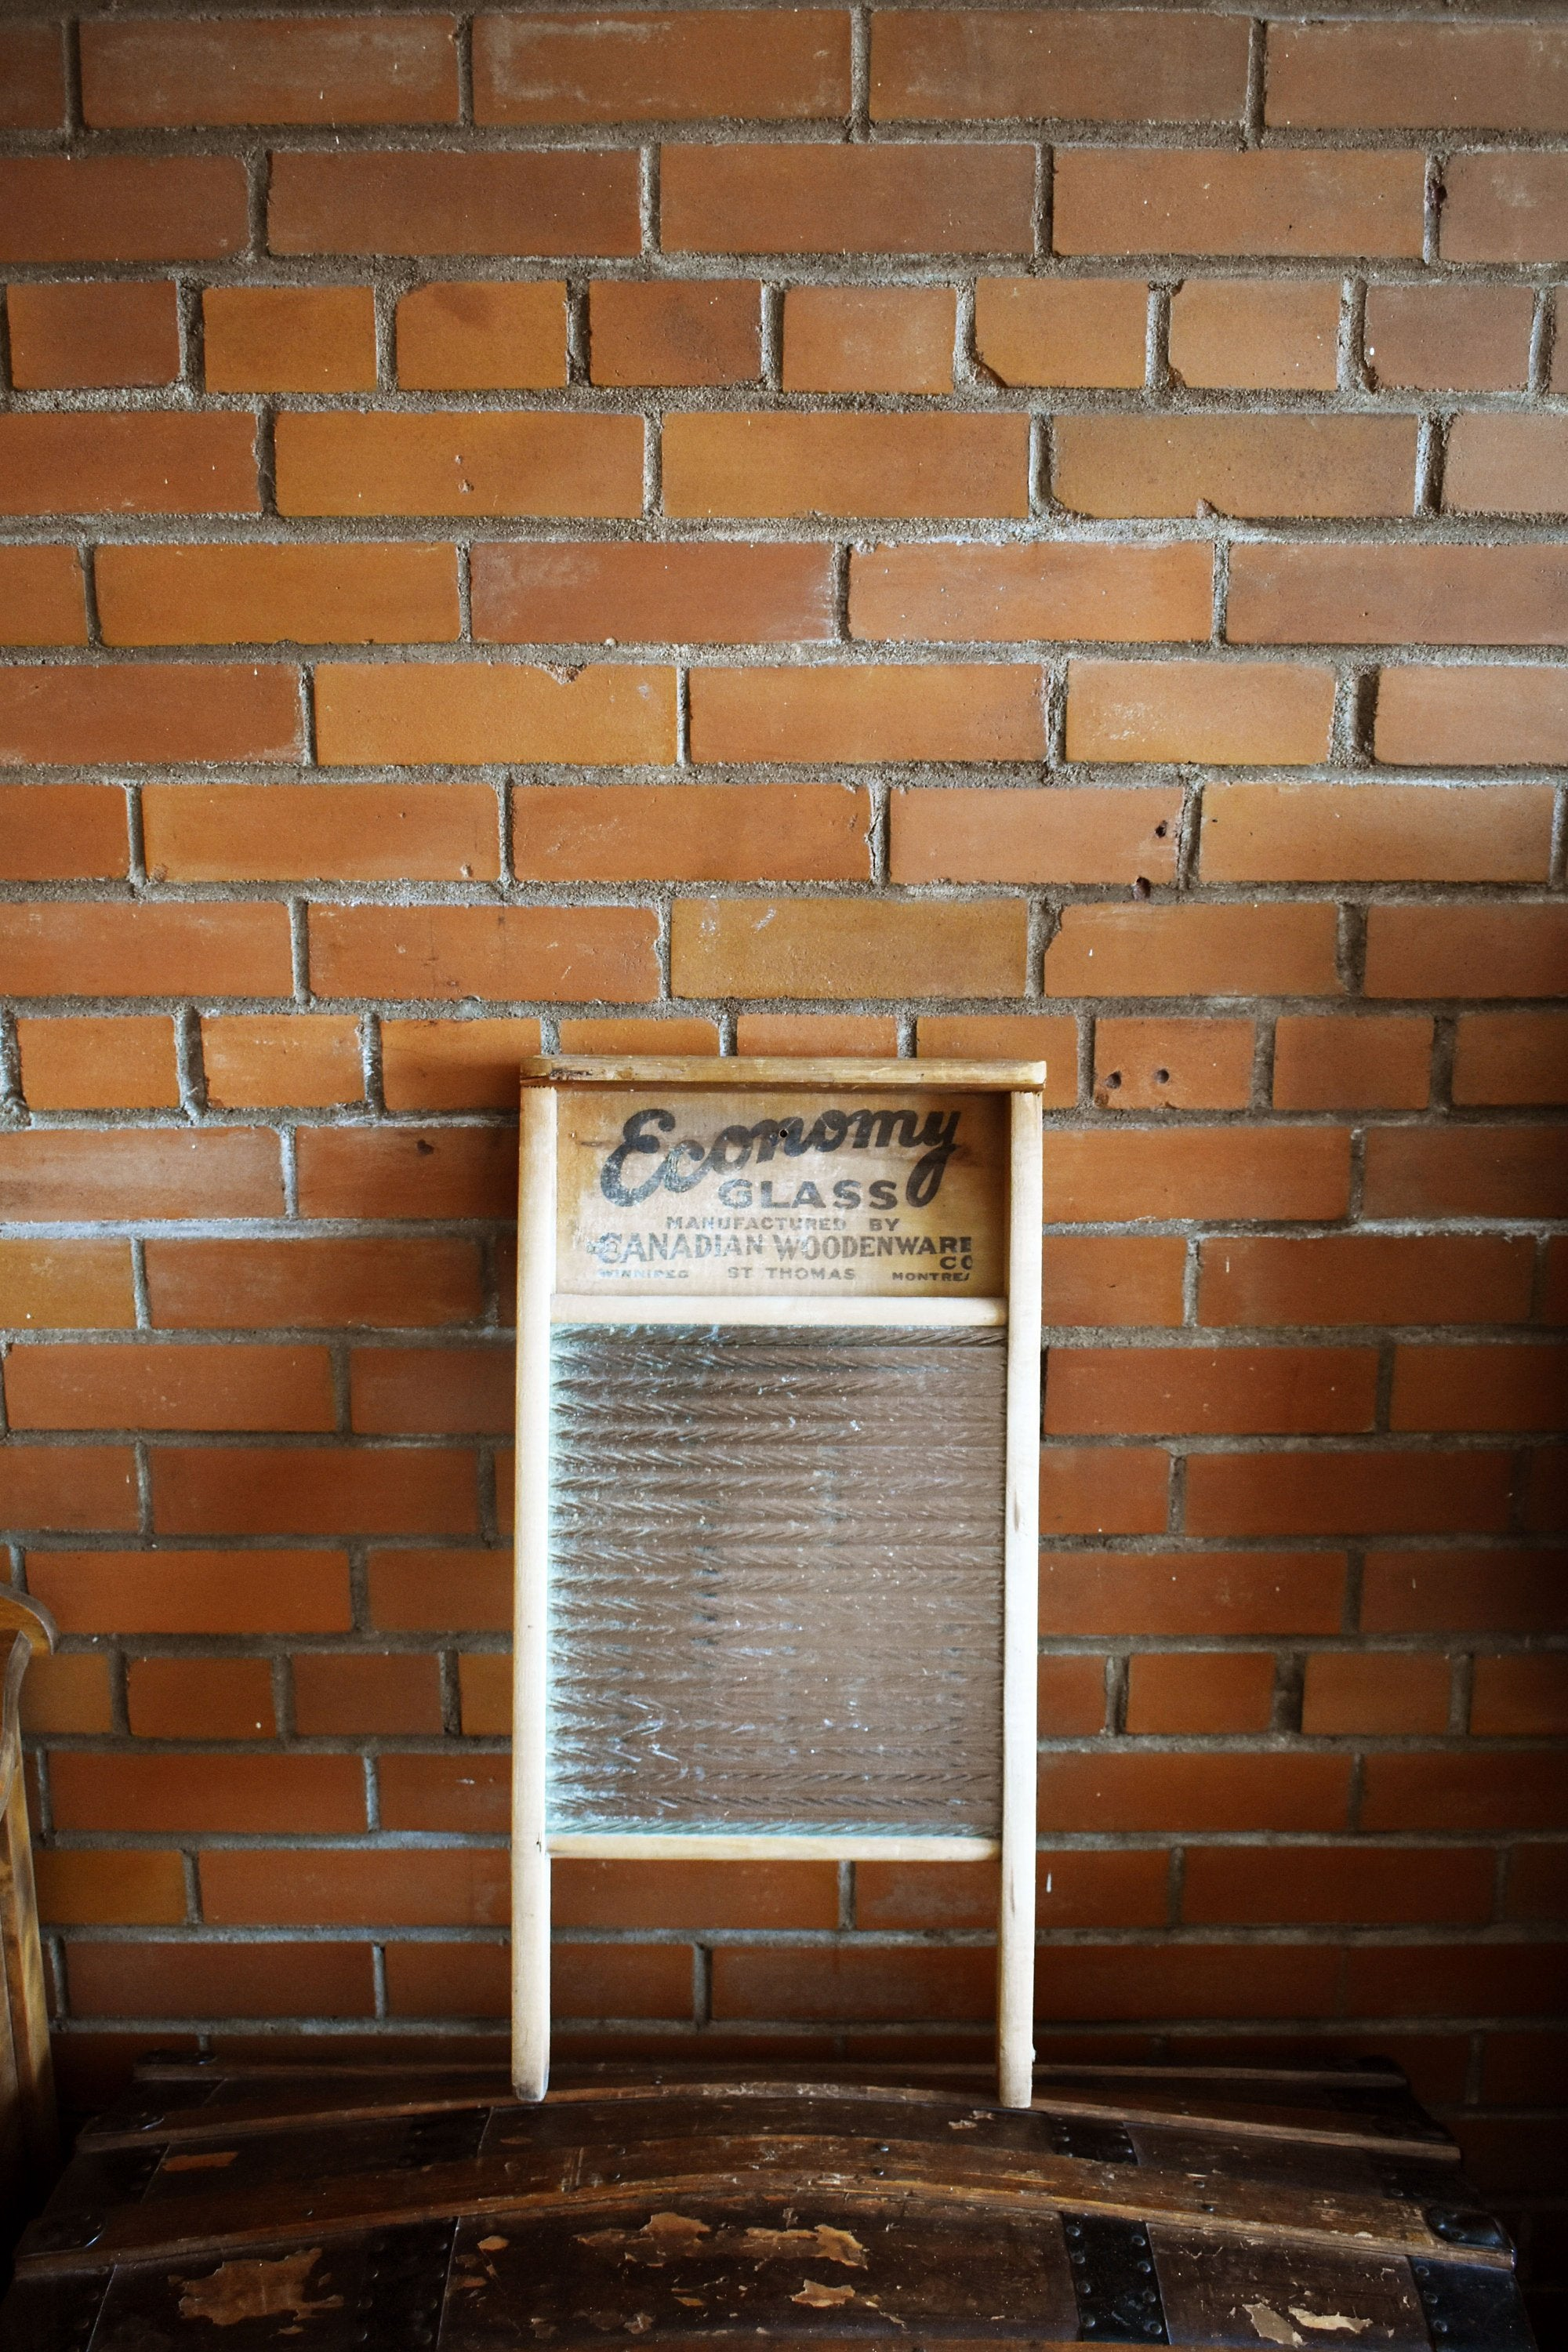 Economy Washboard - Wooden with Glass Grate - Manufactured in Canada - Canadian Woodenware Company